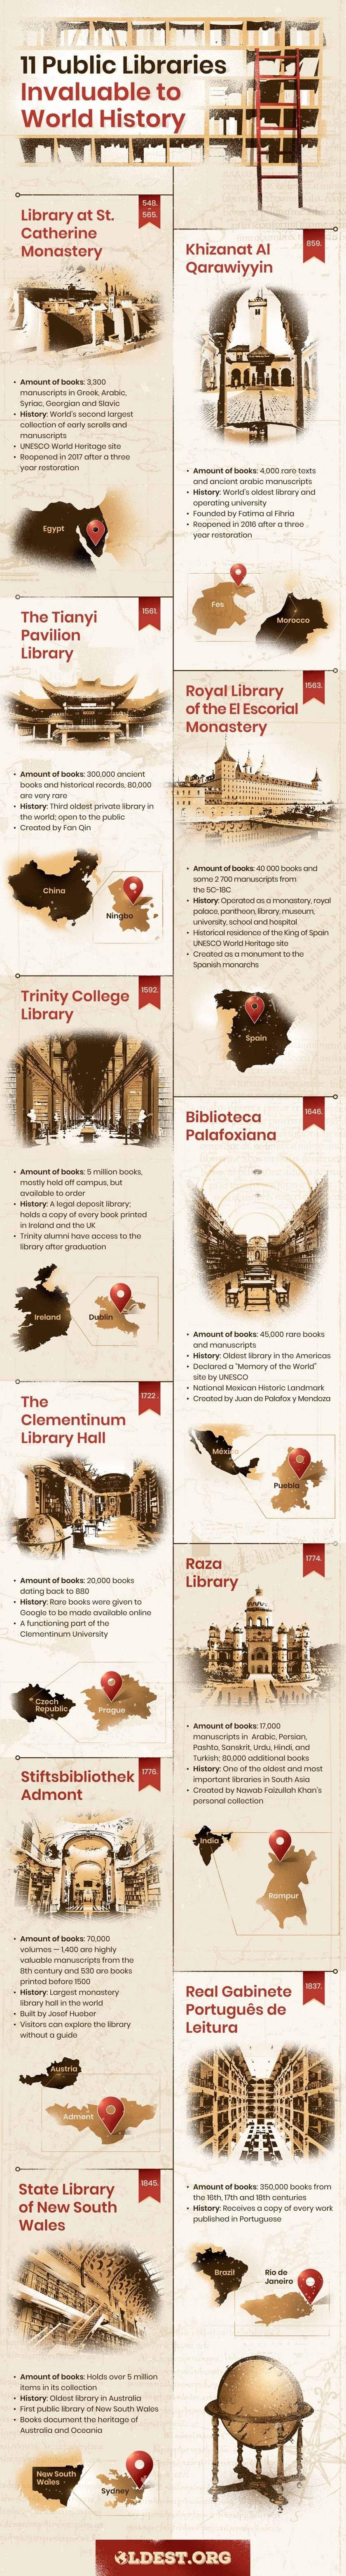 Public libraries invaluable to world history #infographic